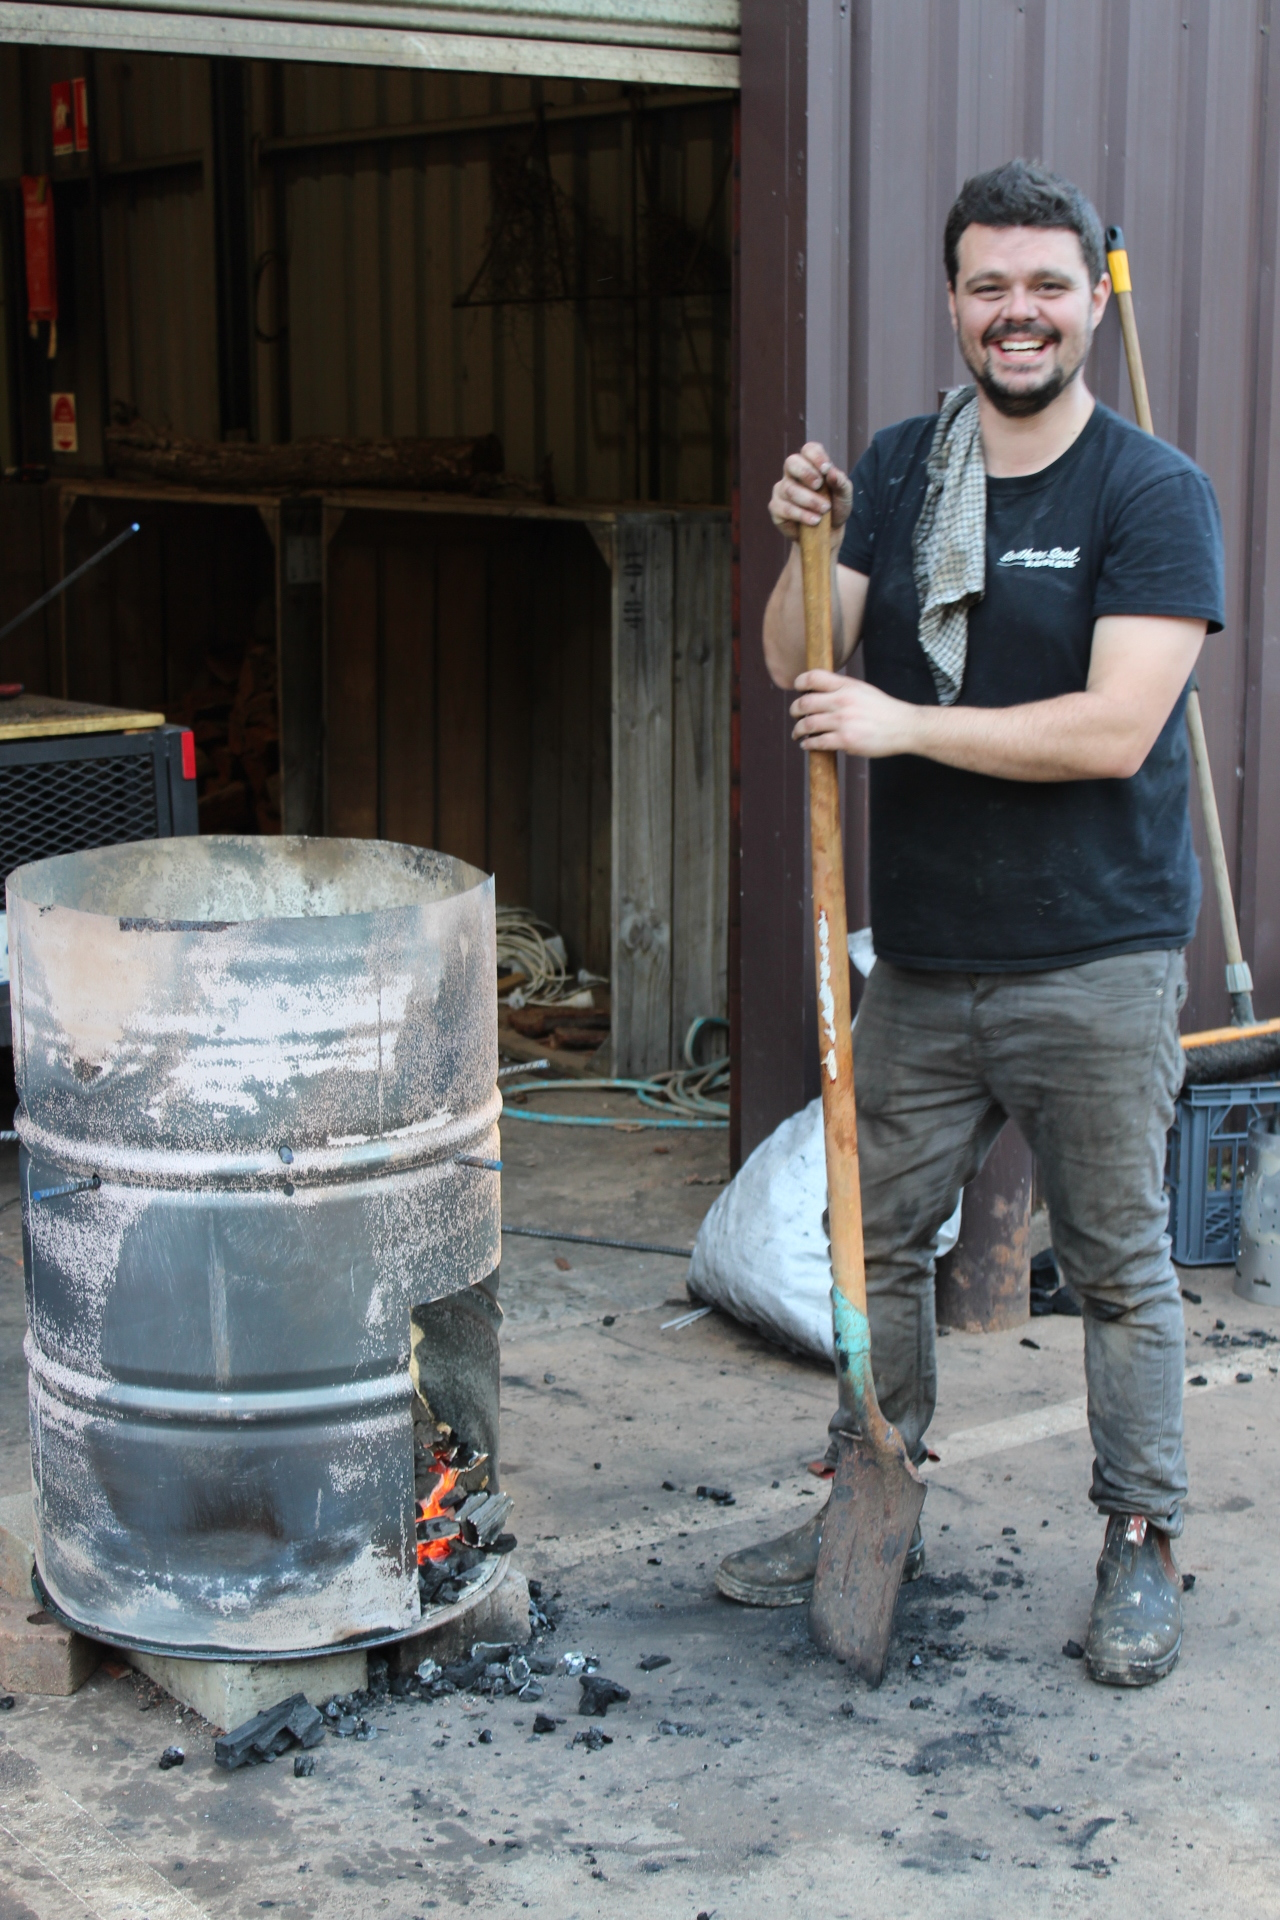 Martin looking pretty chuffed with the burn barrel he built.